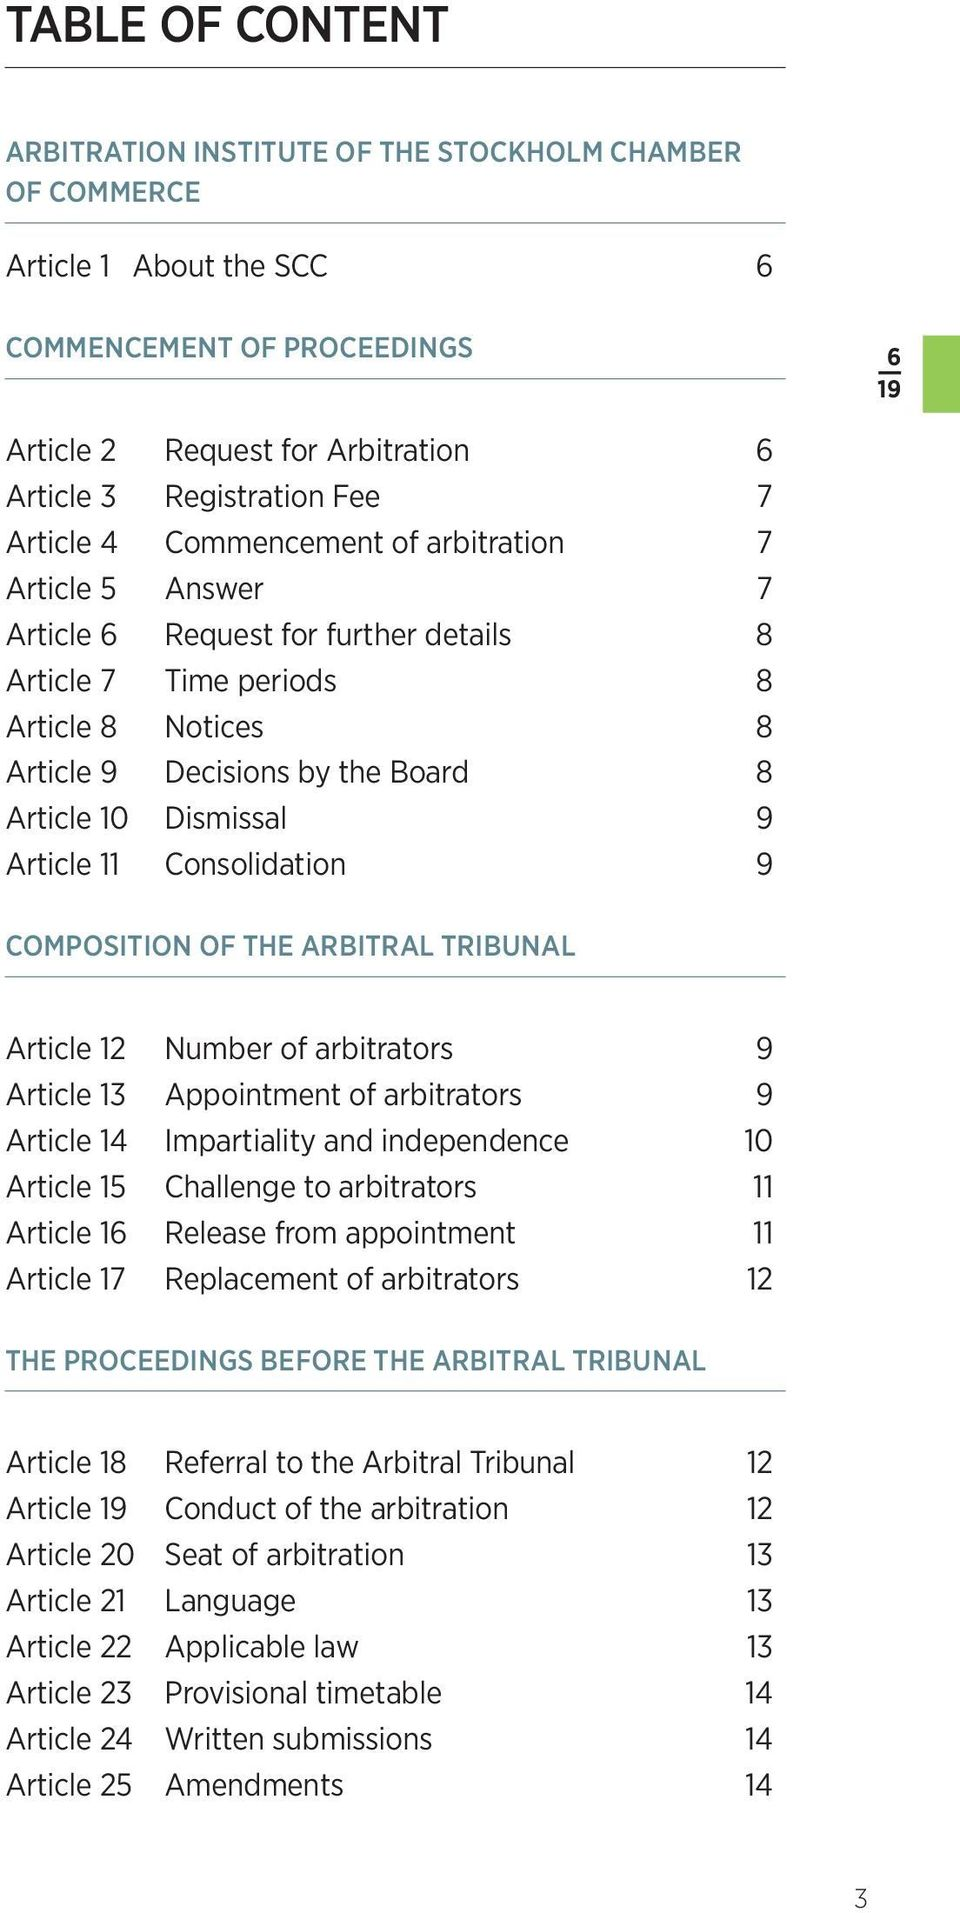 9 Article 11 Consolidation 9 COMPOSITION OF THE ARBITRAL TRIBUNAL Article 12 Number of arbitrators 9 Article 13 Appointment of arbitrators 9 Article 14 Impartiality and independence 10 Article 15